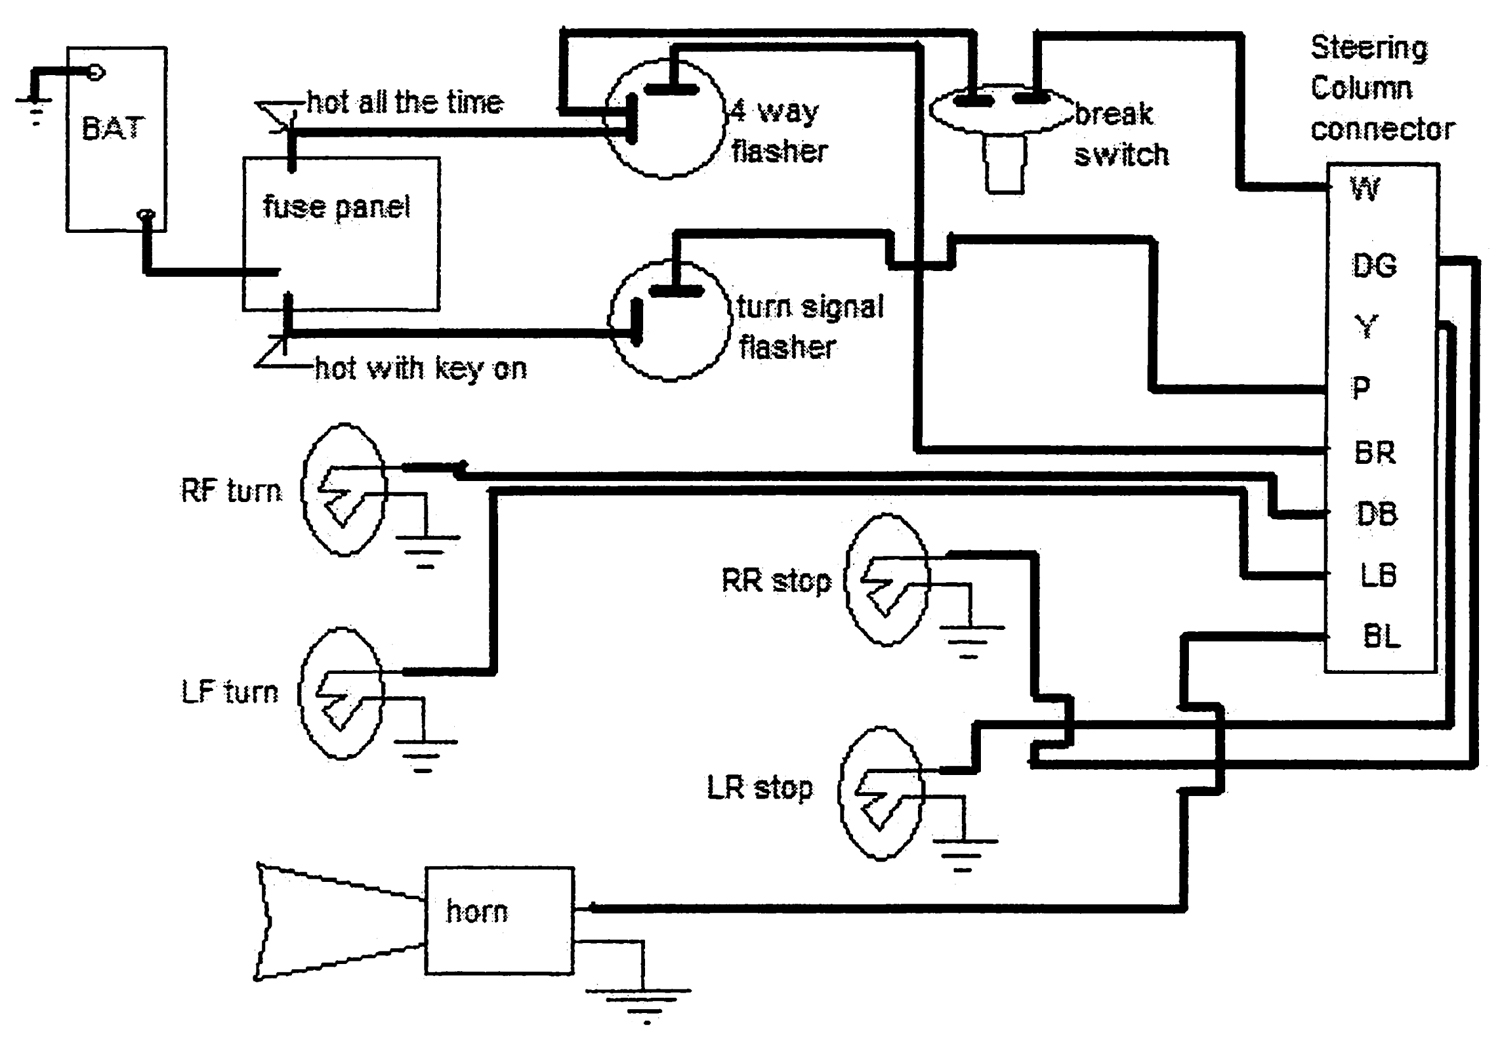 elect sycmatic tech tips chevy steering column wiring diagram at bakdesigns.co